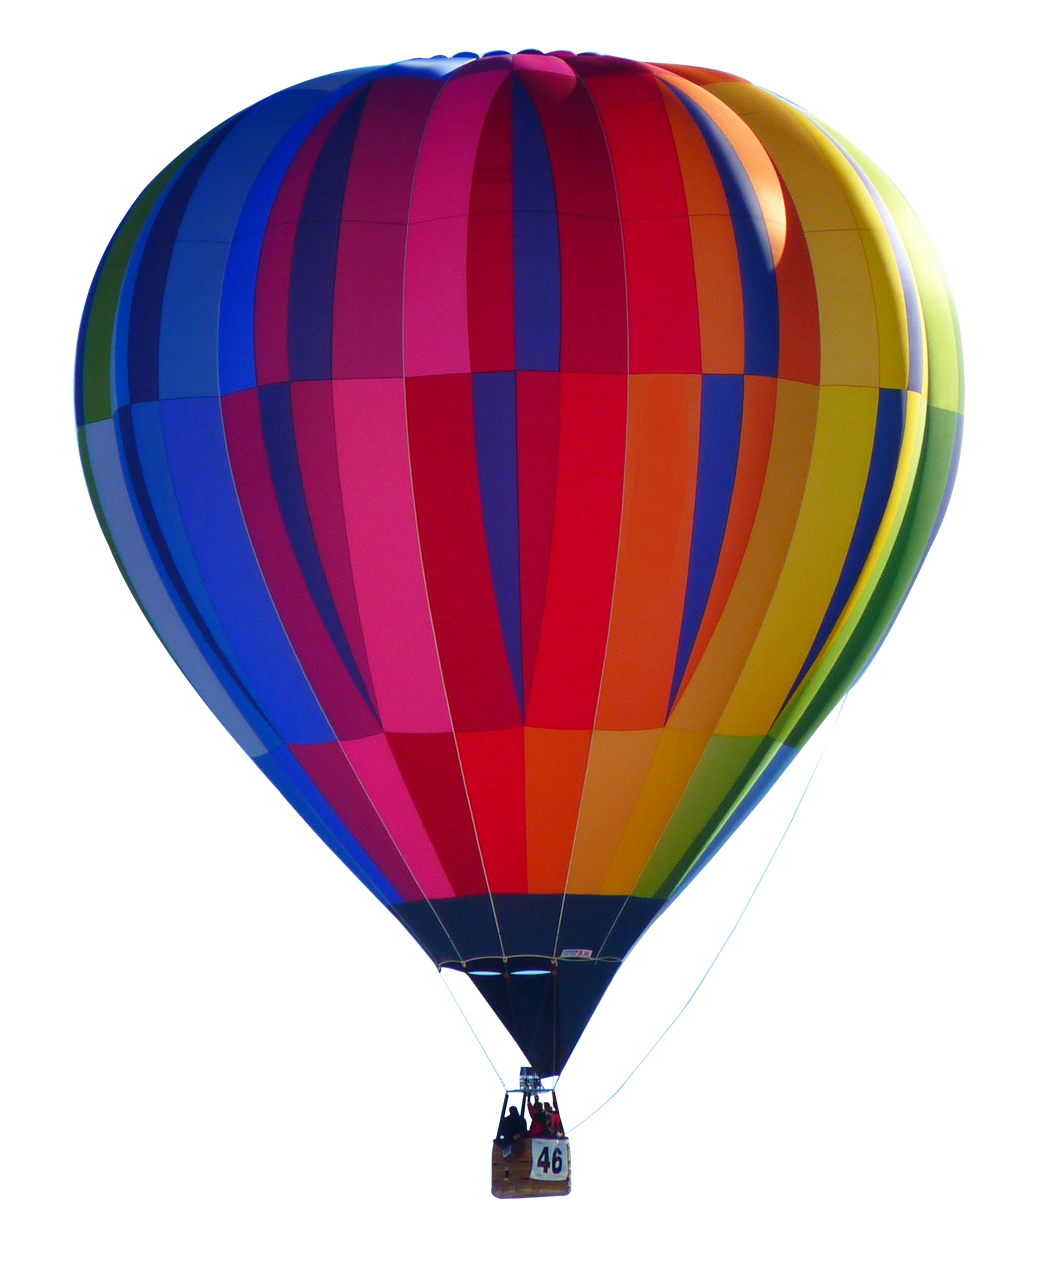 Air Balloon Image Free Download PNG HD PNG Image